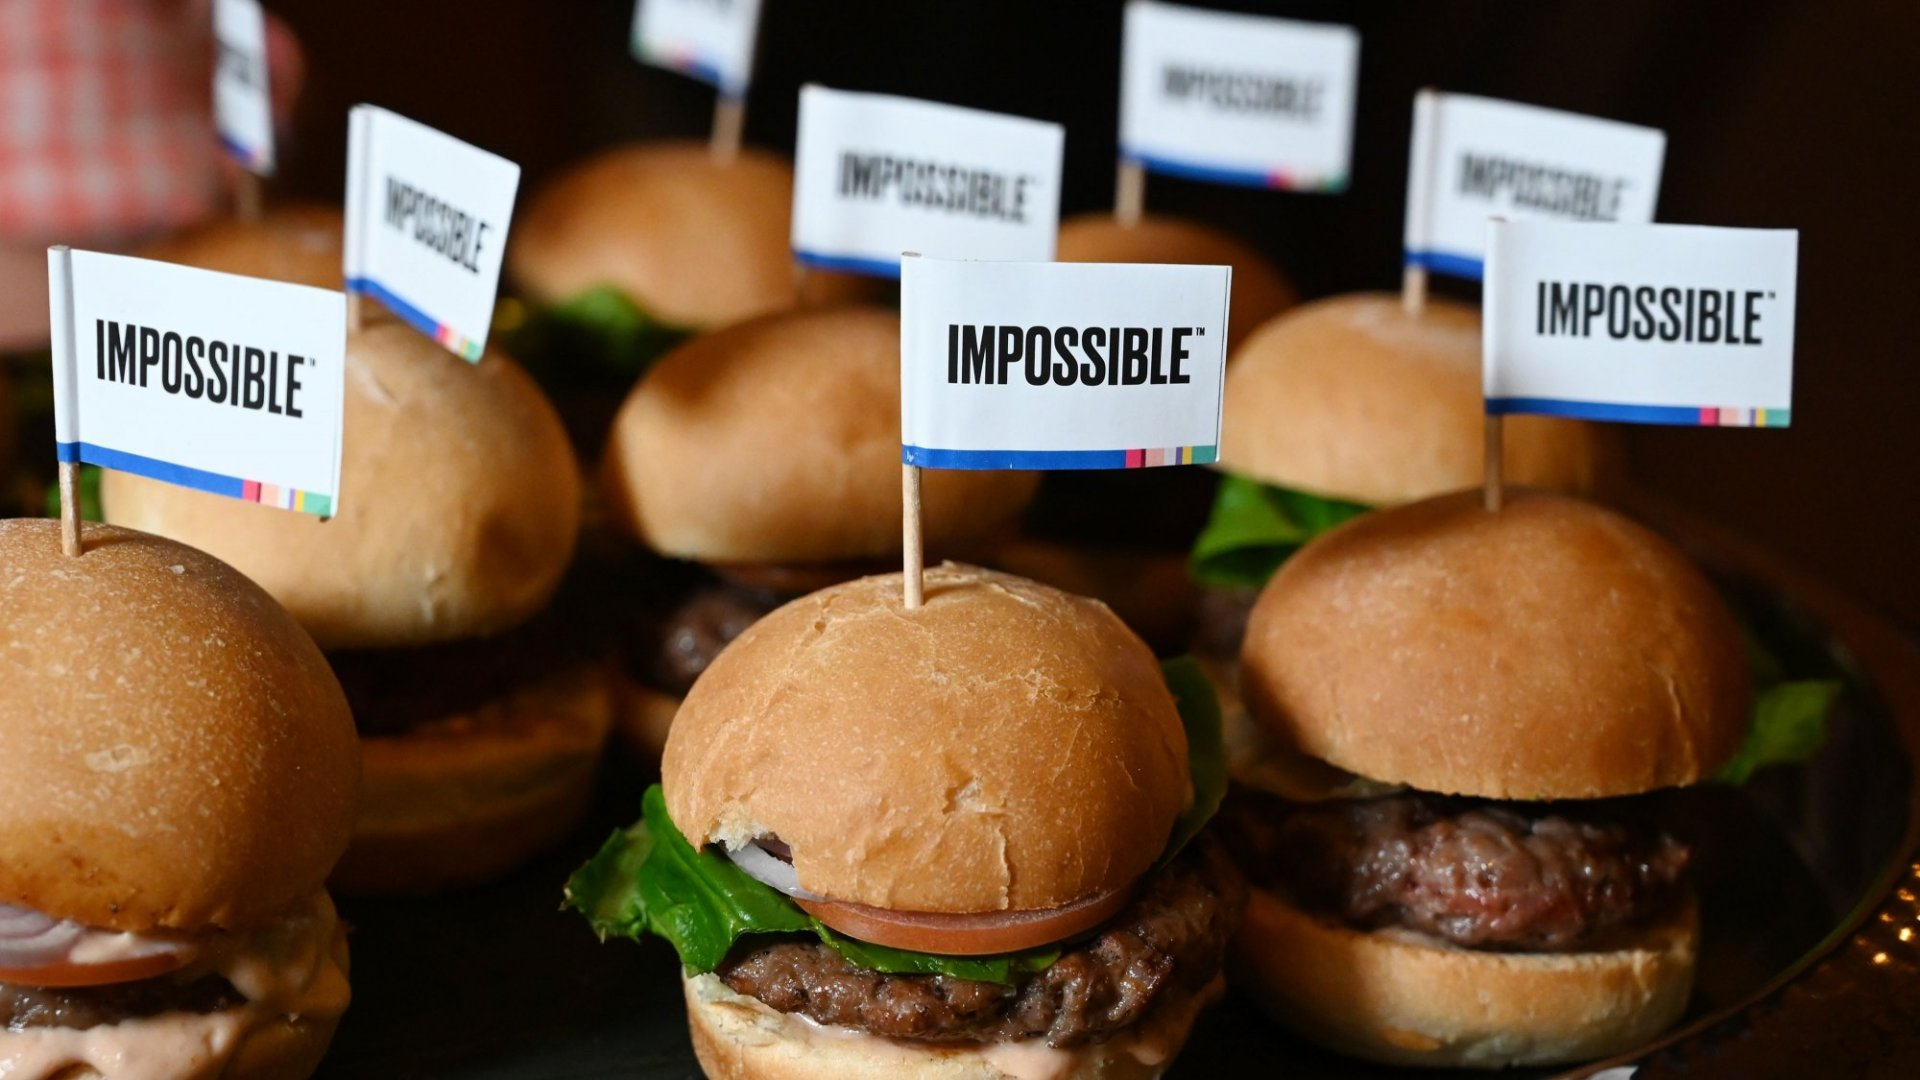 Making Meatless Burgers a Little Less Impossible